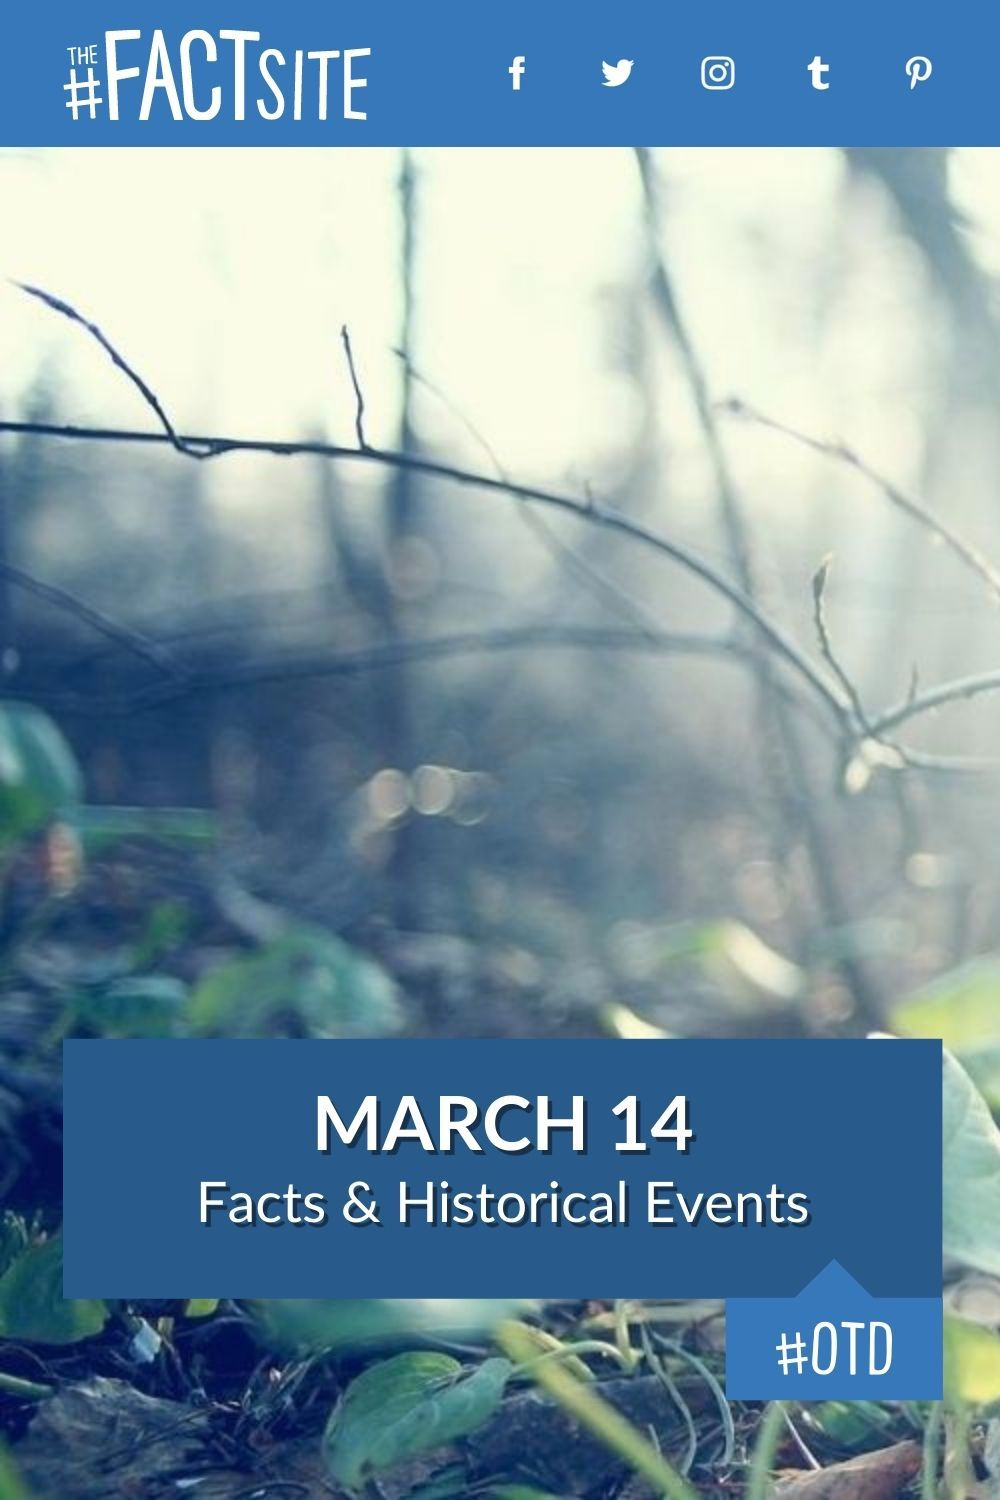 Facts & Historic Events That Happened on March 14